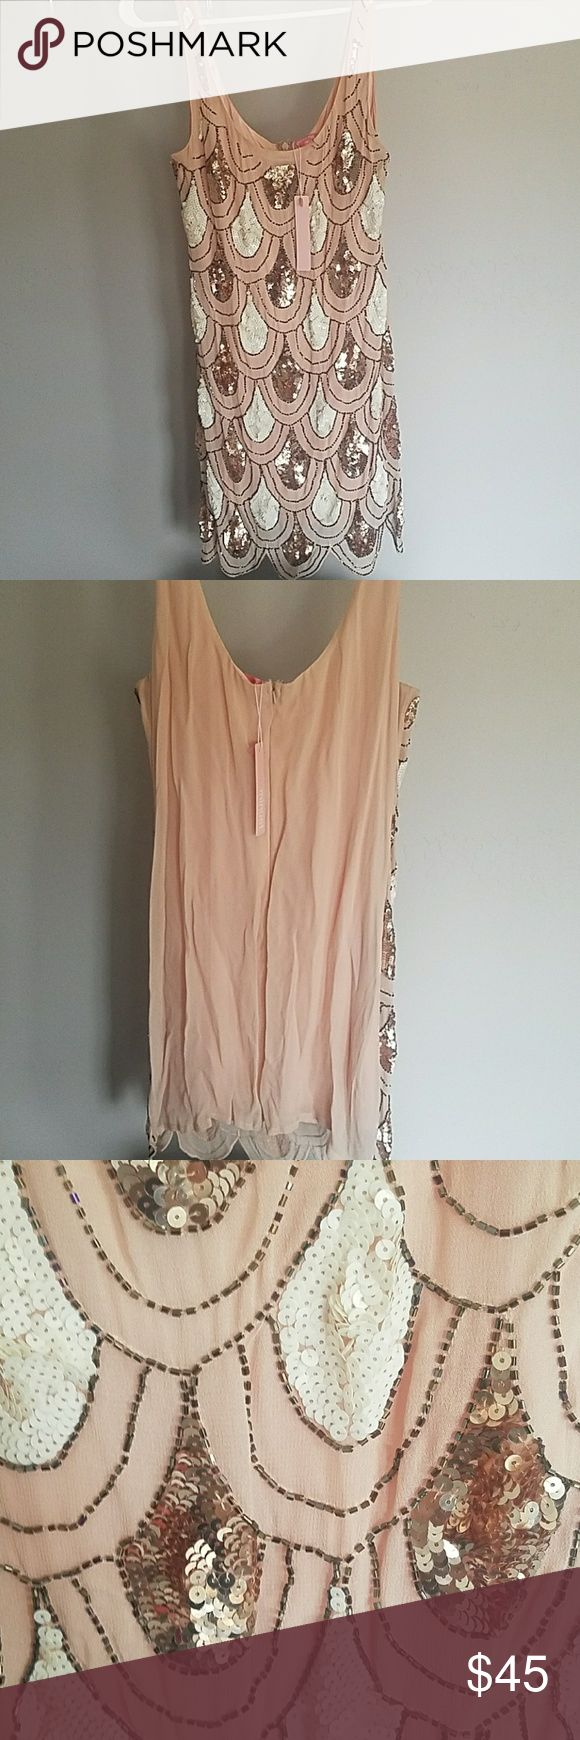 Pink peach sparkly dress by minuet Pink Peach sparkly dress with white and gold sequence never been worn.. Minuet Petite Dresses Midi